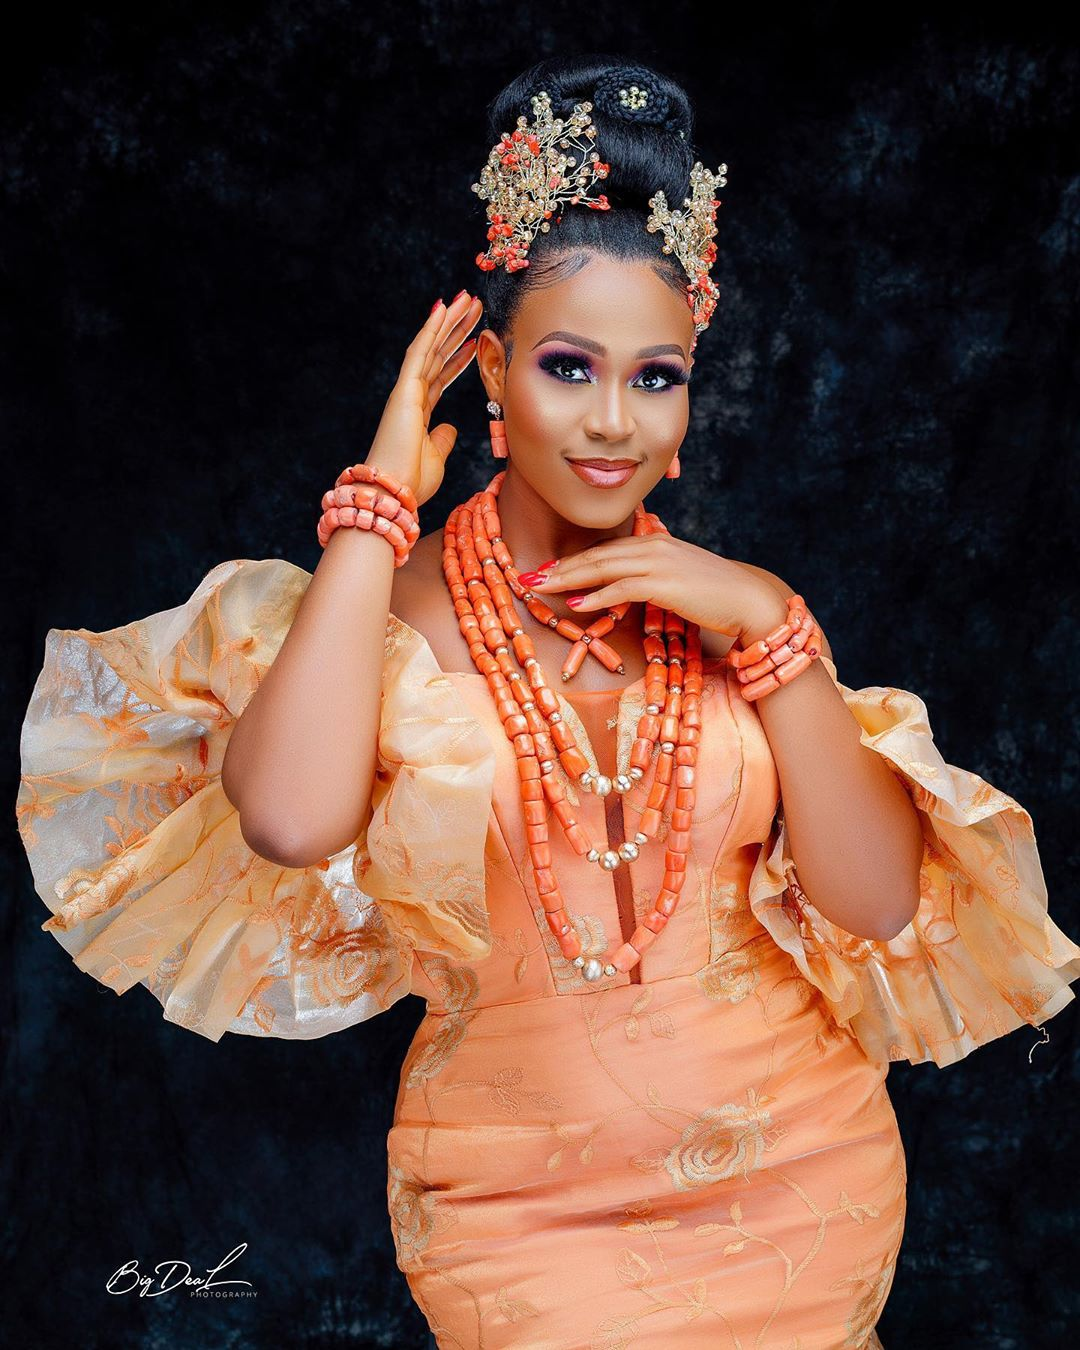 This Igbo Beauty Look will Have You Slaying Like a Queen